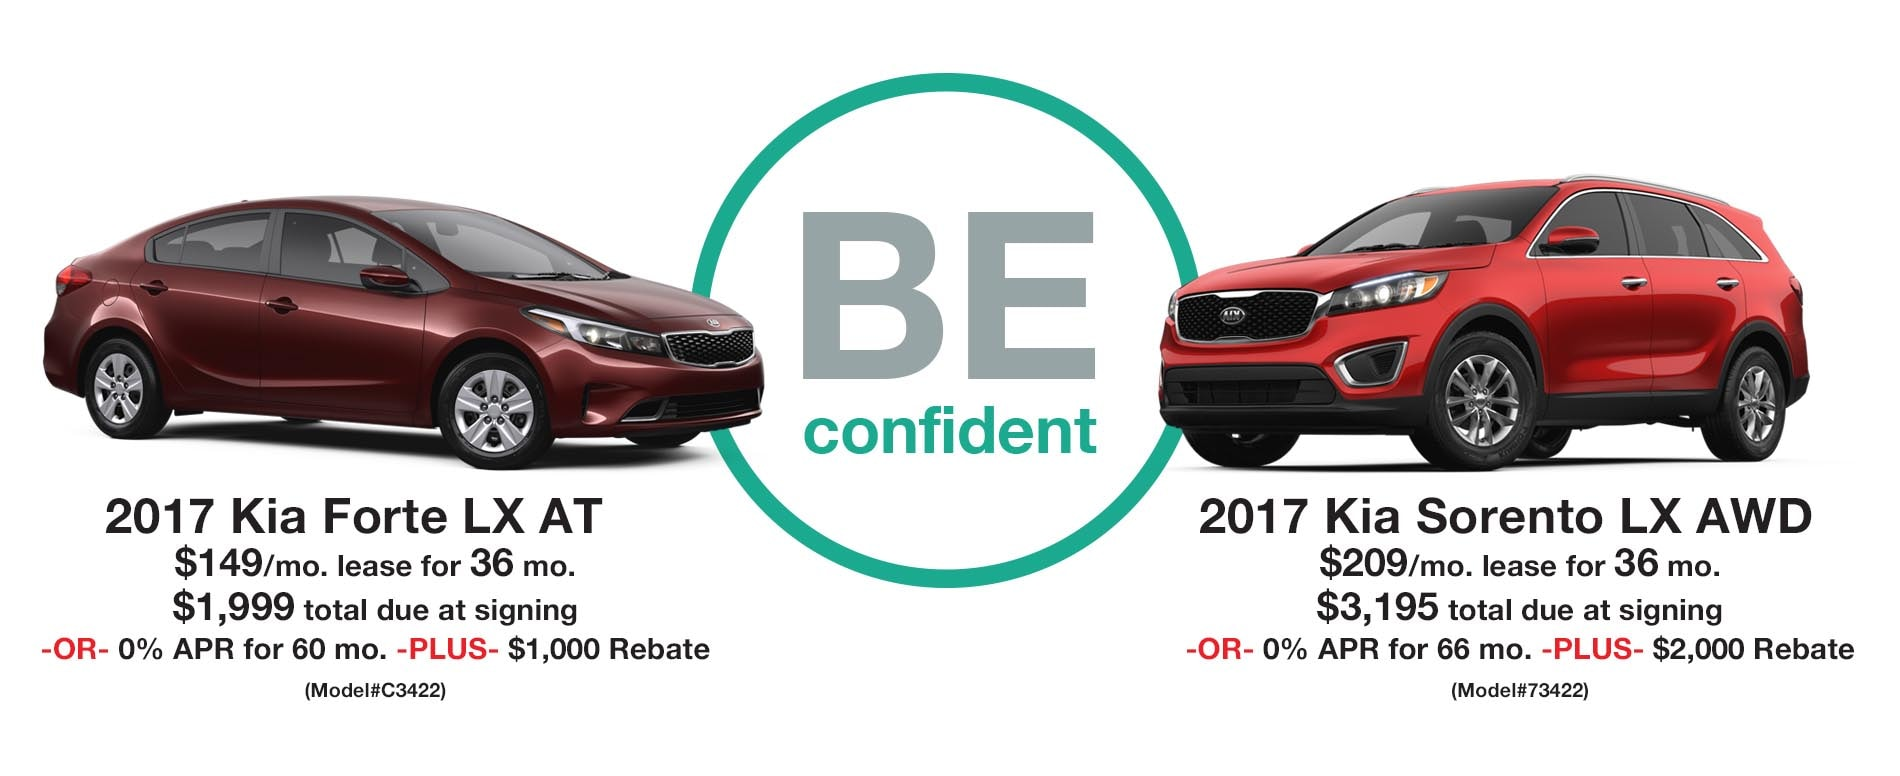 BE Confident. Lease a 2017 Forte LX Auto for just $149 per month with $1,999 due at signing or lease a 2017 Sorento LX AWD for $209 per month with $3,195 due at signing.